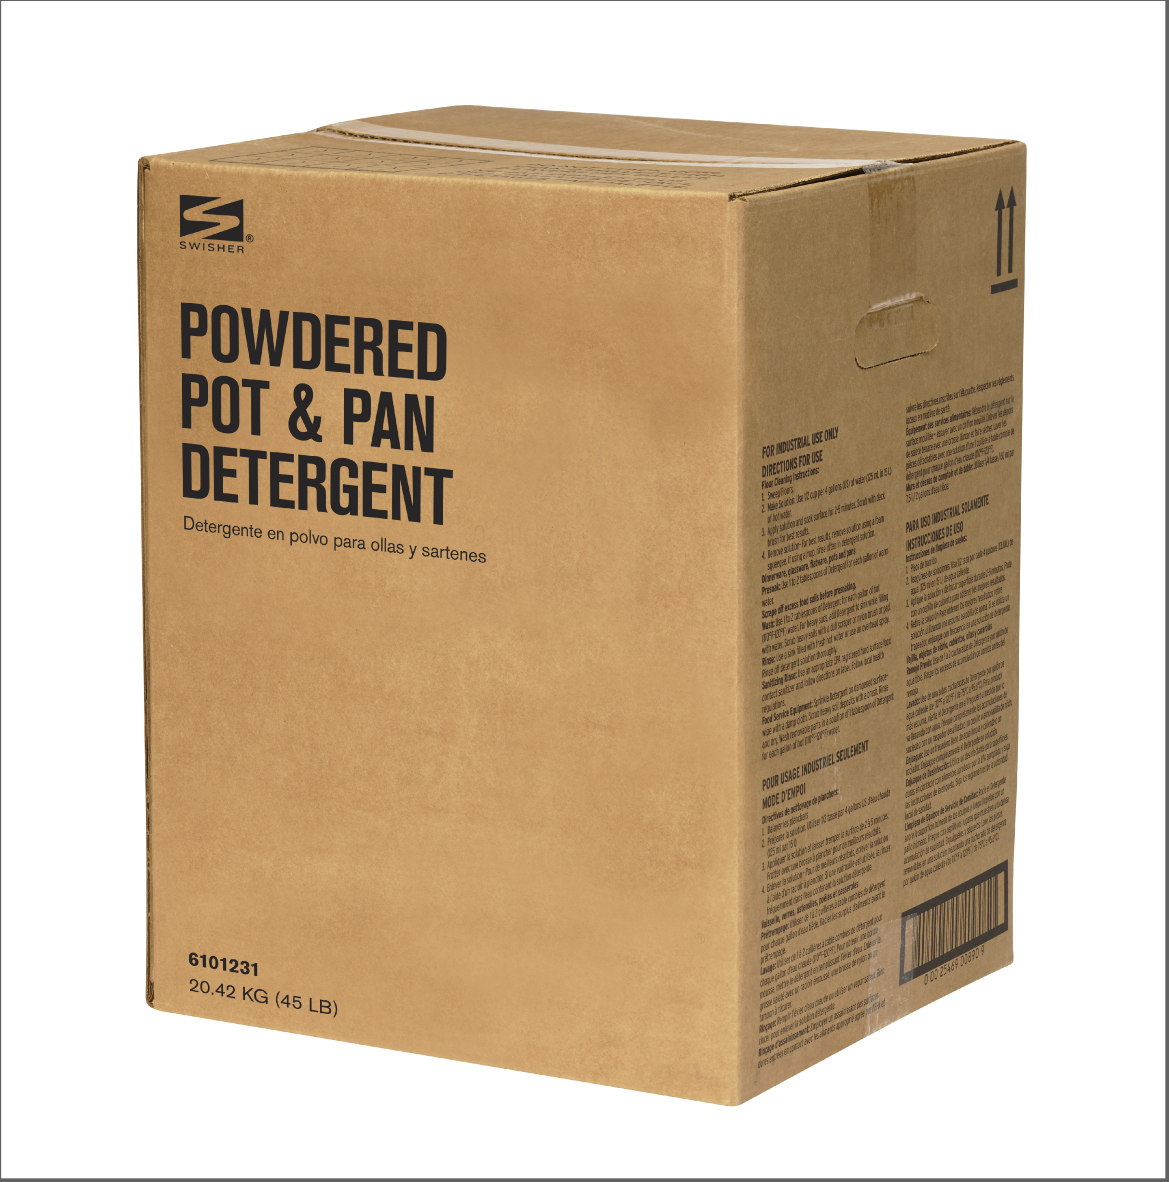 Swisher Powdered Pot and Pan Detergent